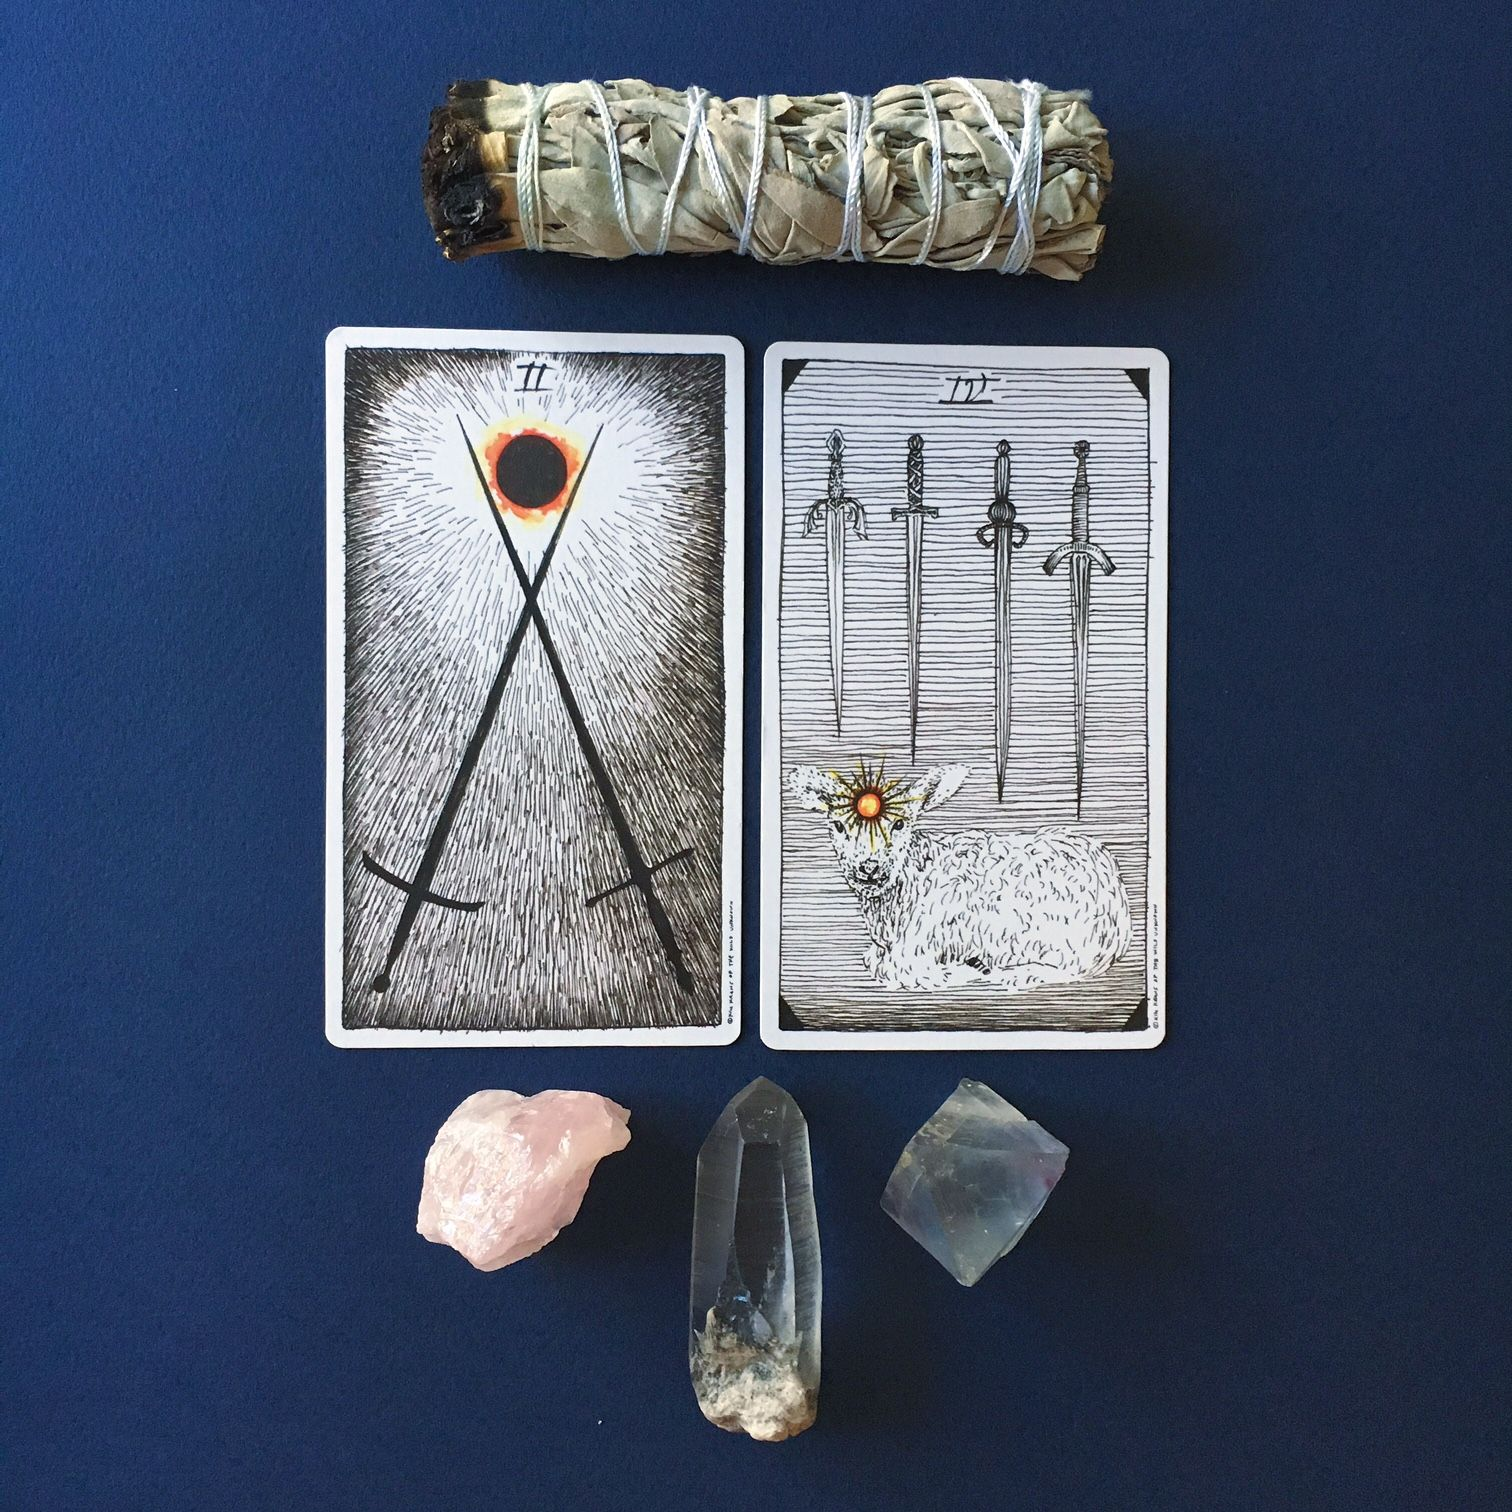 2/10/16 - It is decision making time, but a decision made through focus and quiet reflection, not grand gestures. The decision you come to is going to be a compromise. The bright orb of insight in the 2 of Swords burns between the swords of thought, bringing them togethe. So this decision is about finding a third way. In the 4 of Swords the orb of insight now burns in the mind of the calf who is so calm, focused and clear-headed she is not bothered by the swords that point down on her.